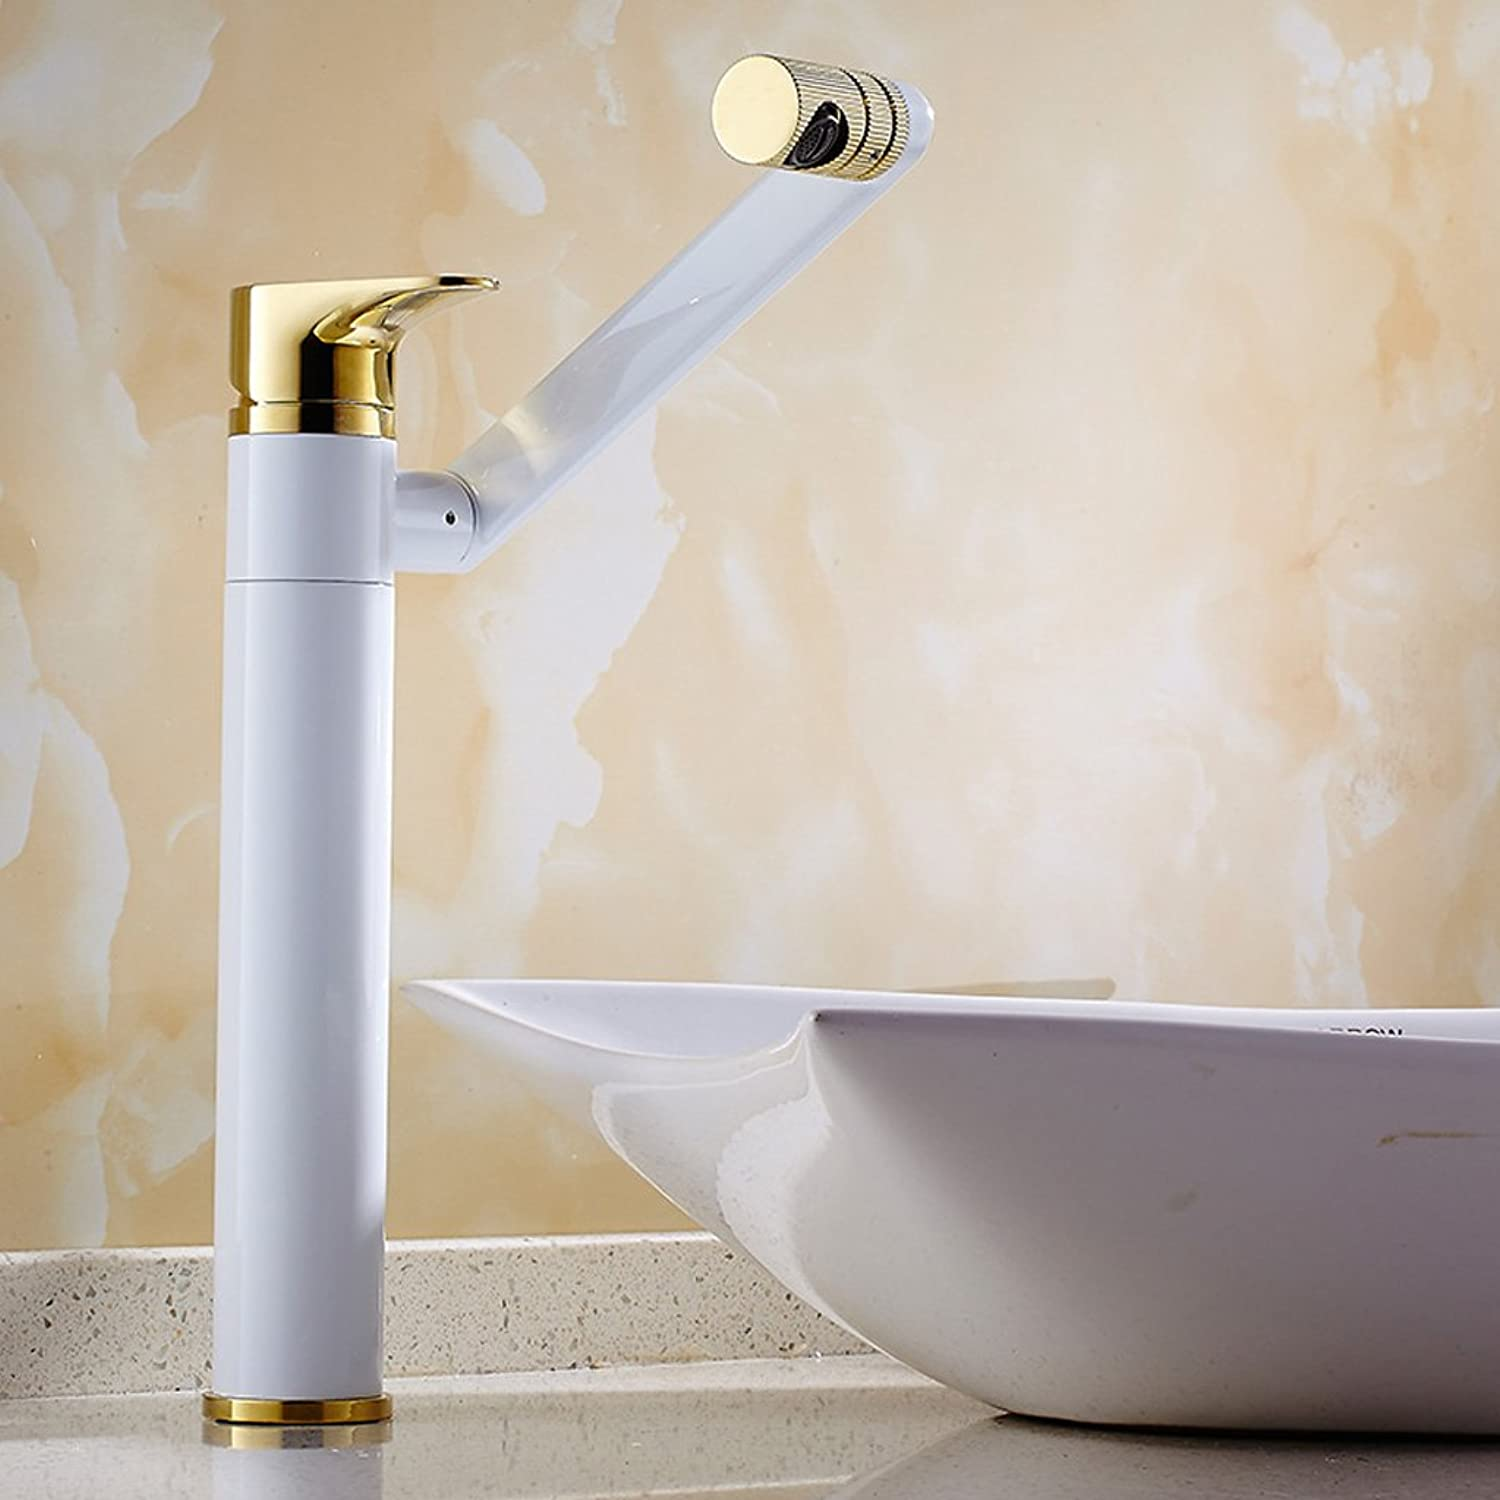 European style copper main basin hot and cold water faucet can be redated 365 degrees gold antique wash basin basin faucet